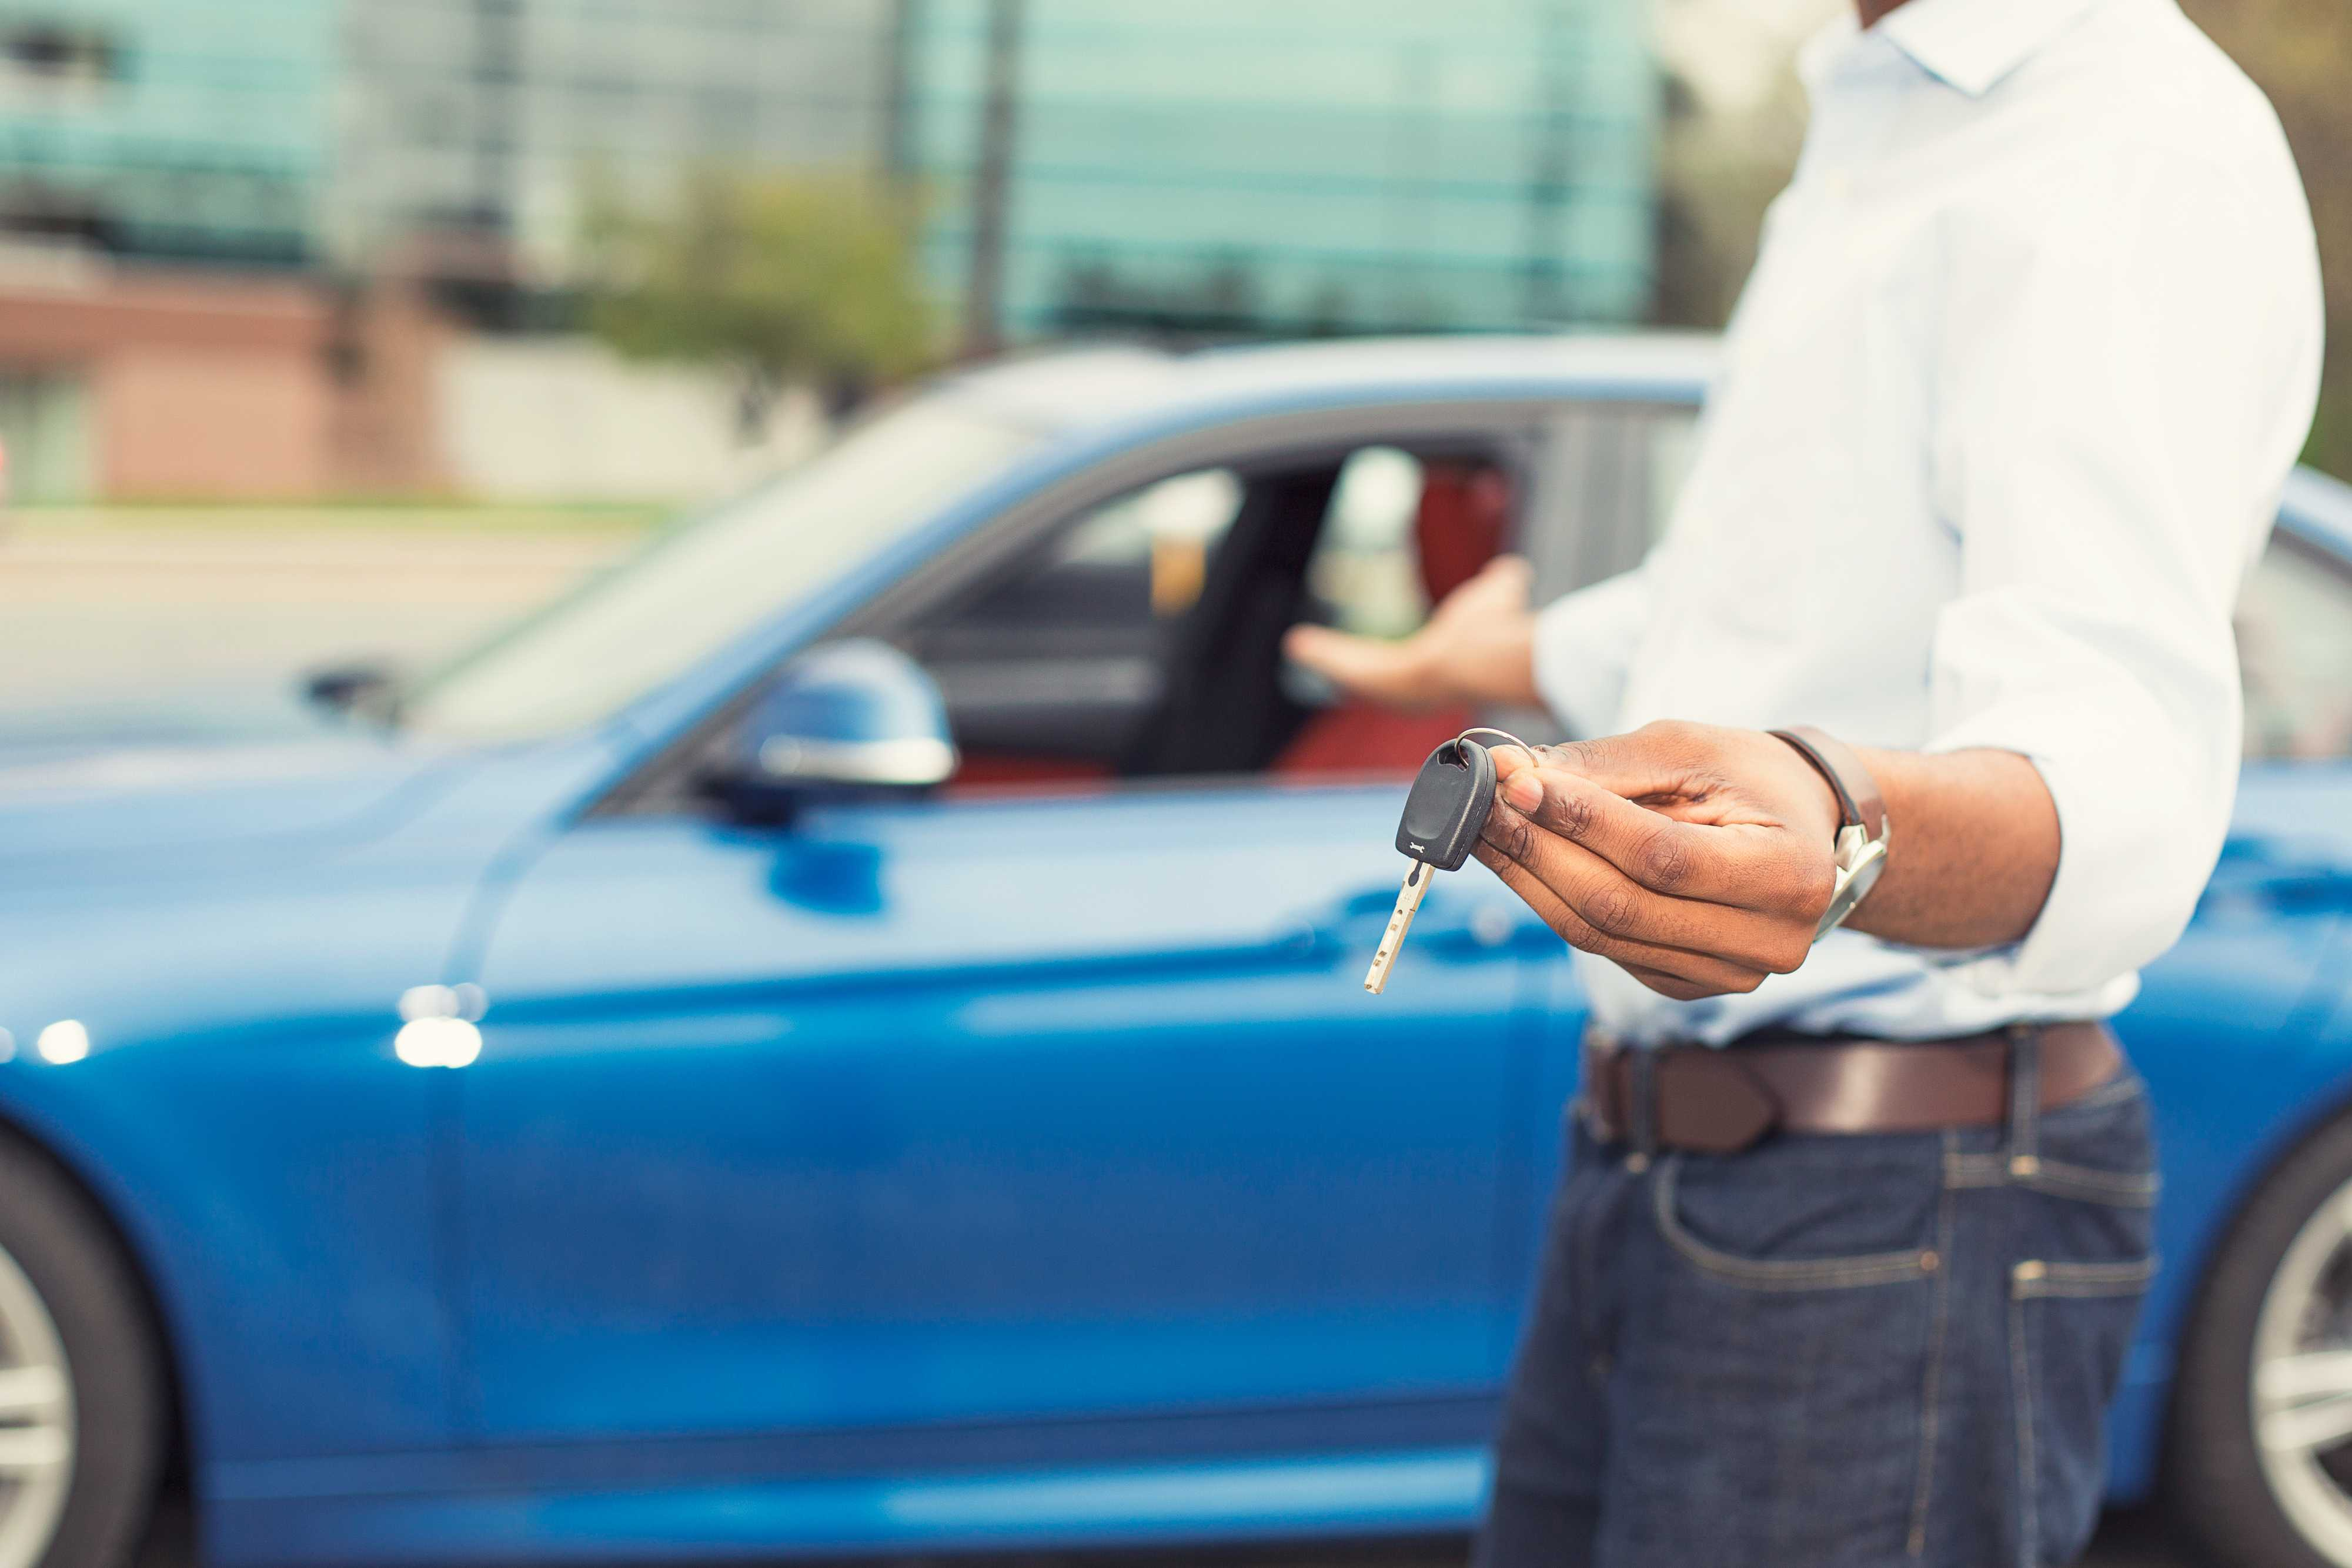 Basic Things to Remember When Making a Car Purchase